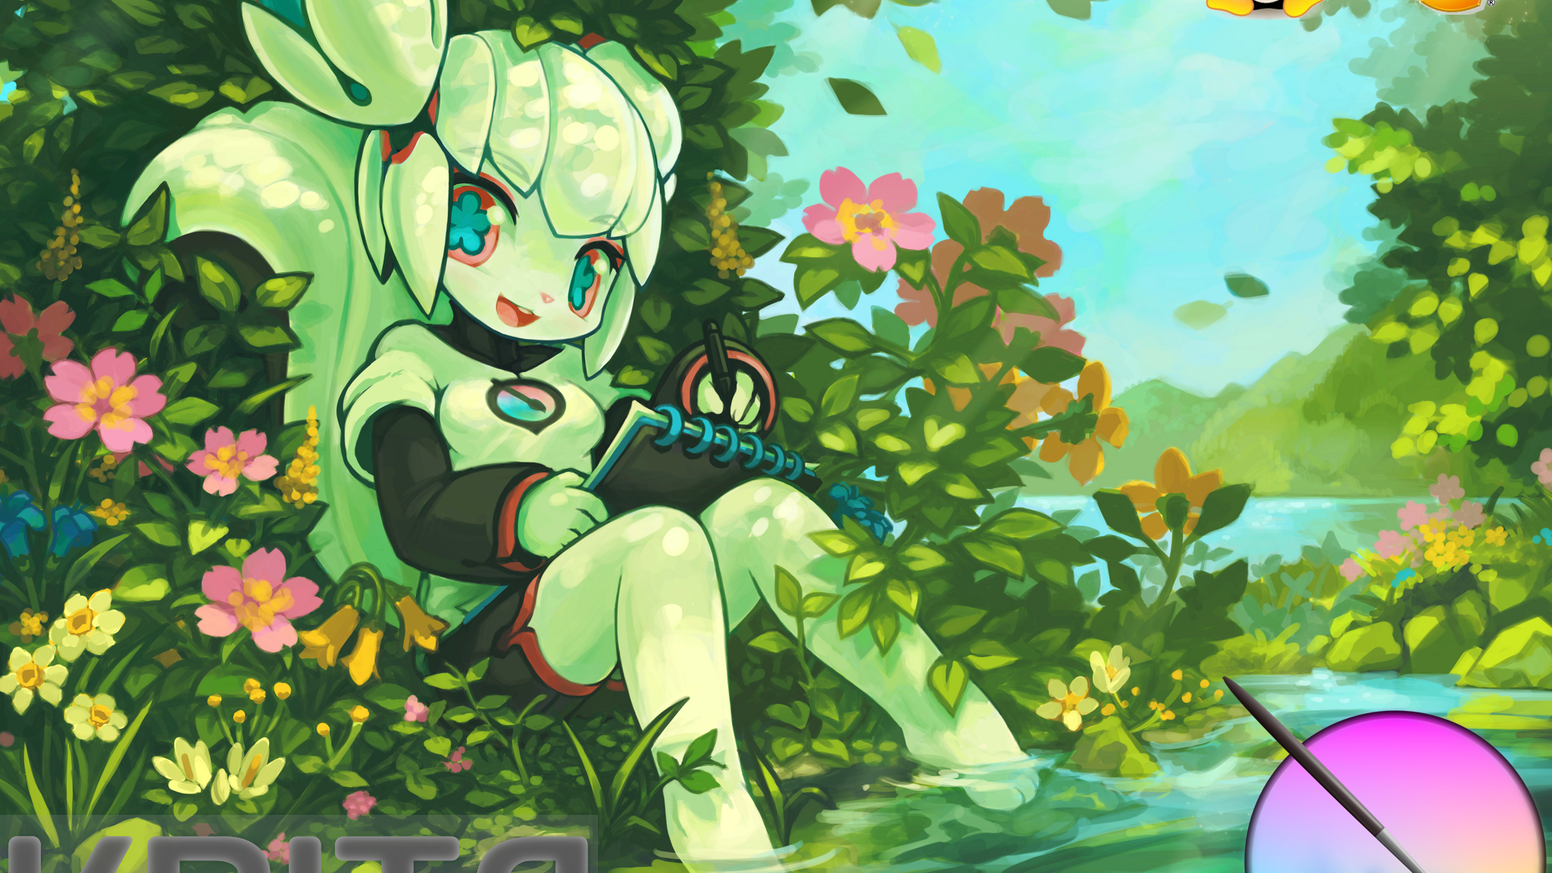 Krita is the free and open source digital painting program used by artists all over the world. Help make Krita even faster and better!